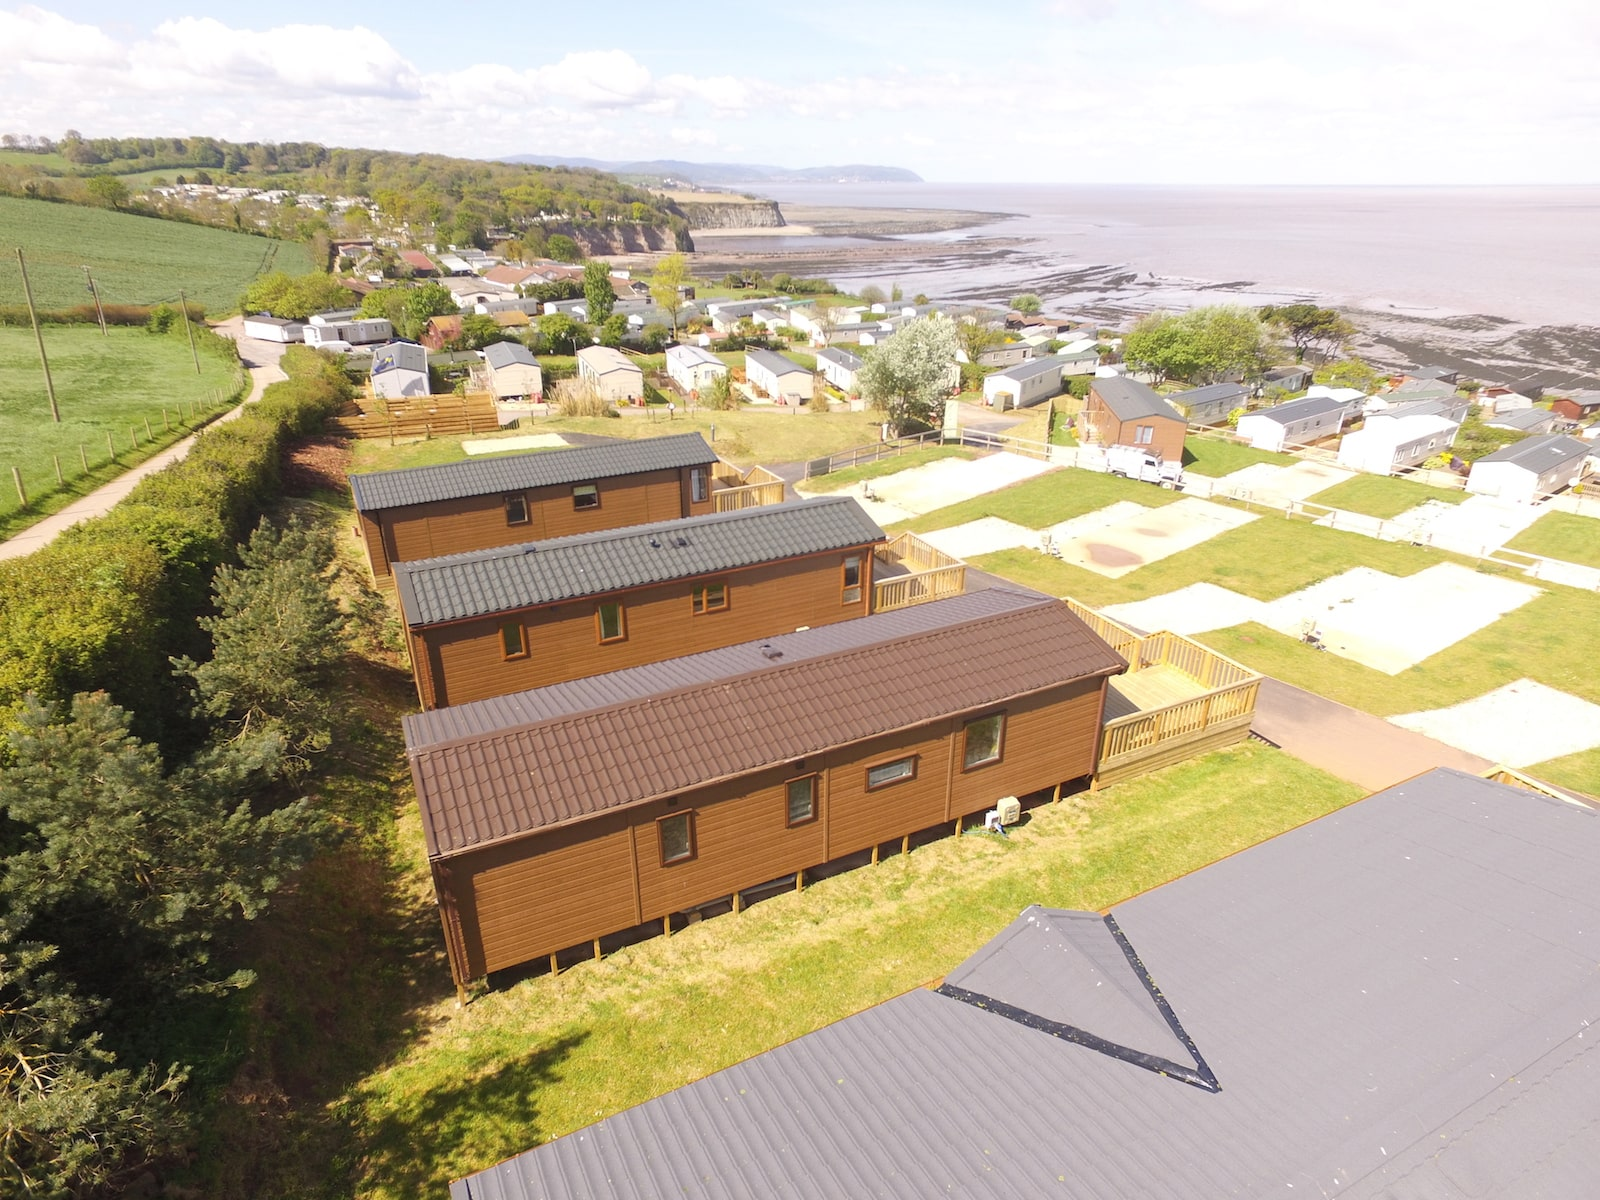 Luxury lodges for sale at St Audries Bay Holiday Club